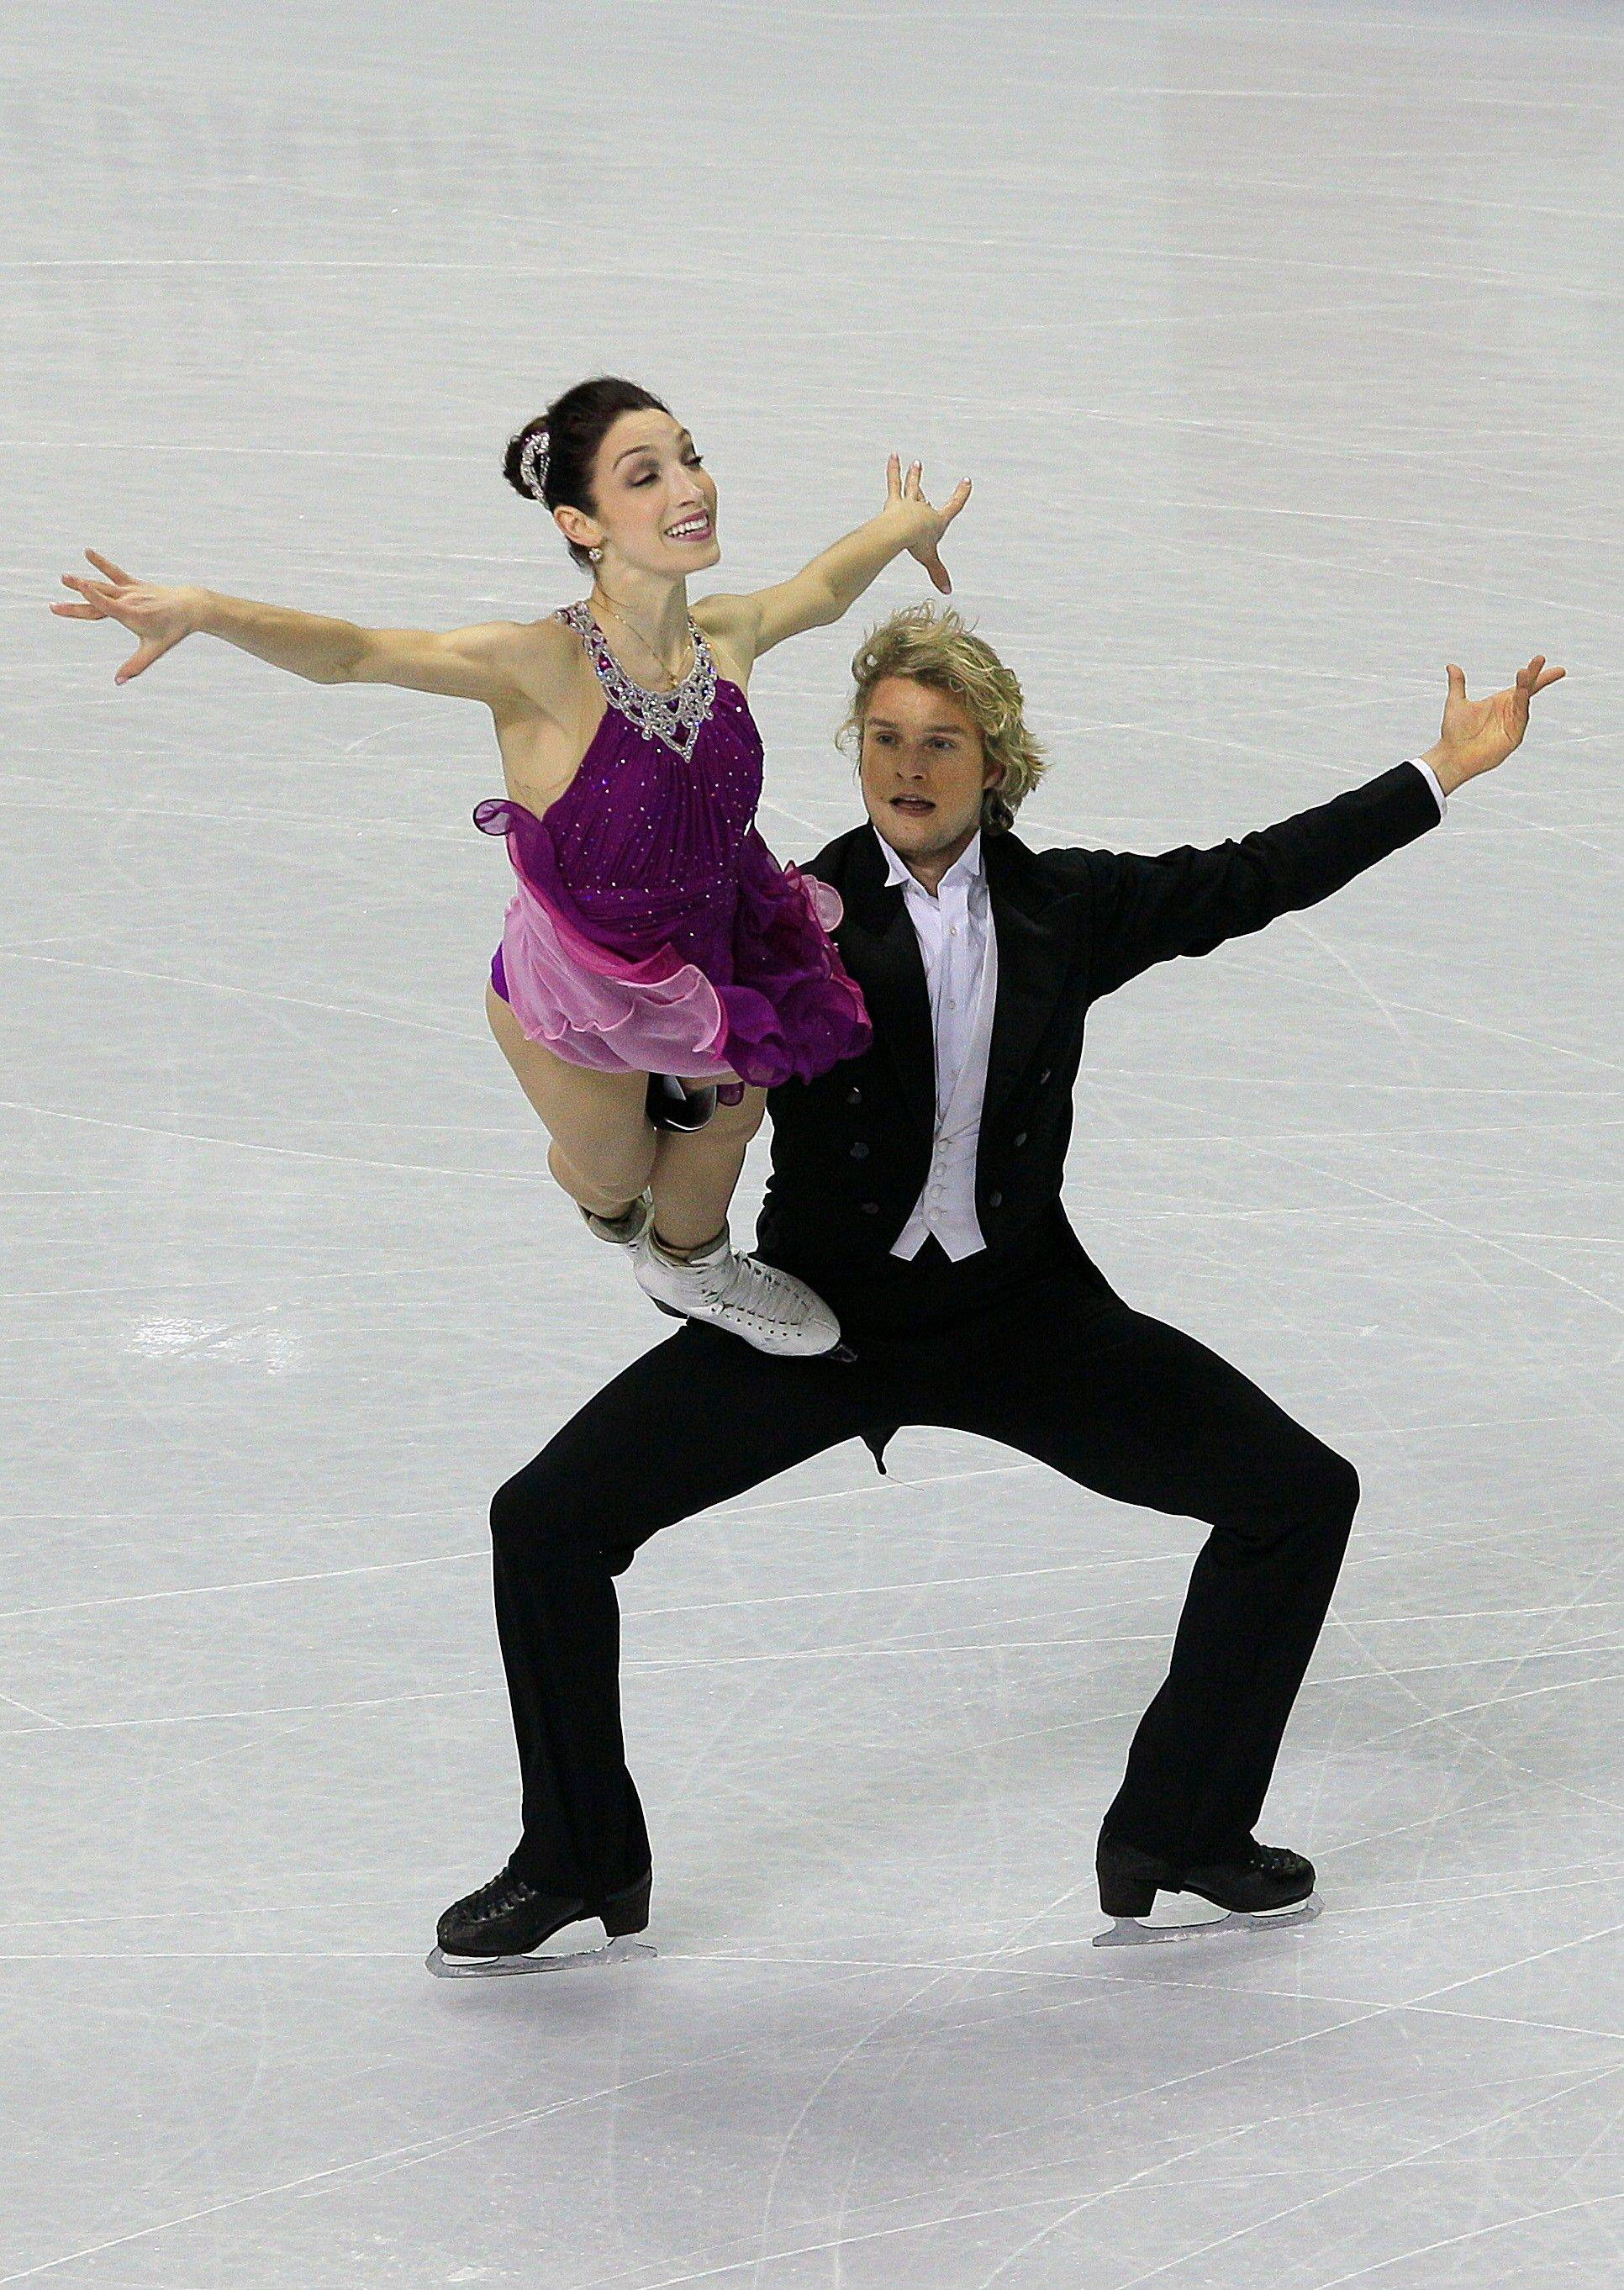 Meryl Davis and Charlie White compete in their free dance Saturday in the ice dancing event at the U.S. Figure Skating Championships in San Jose, Calif.